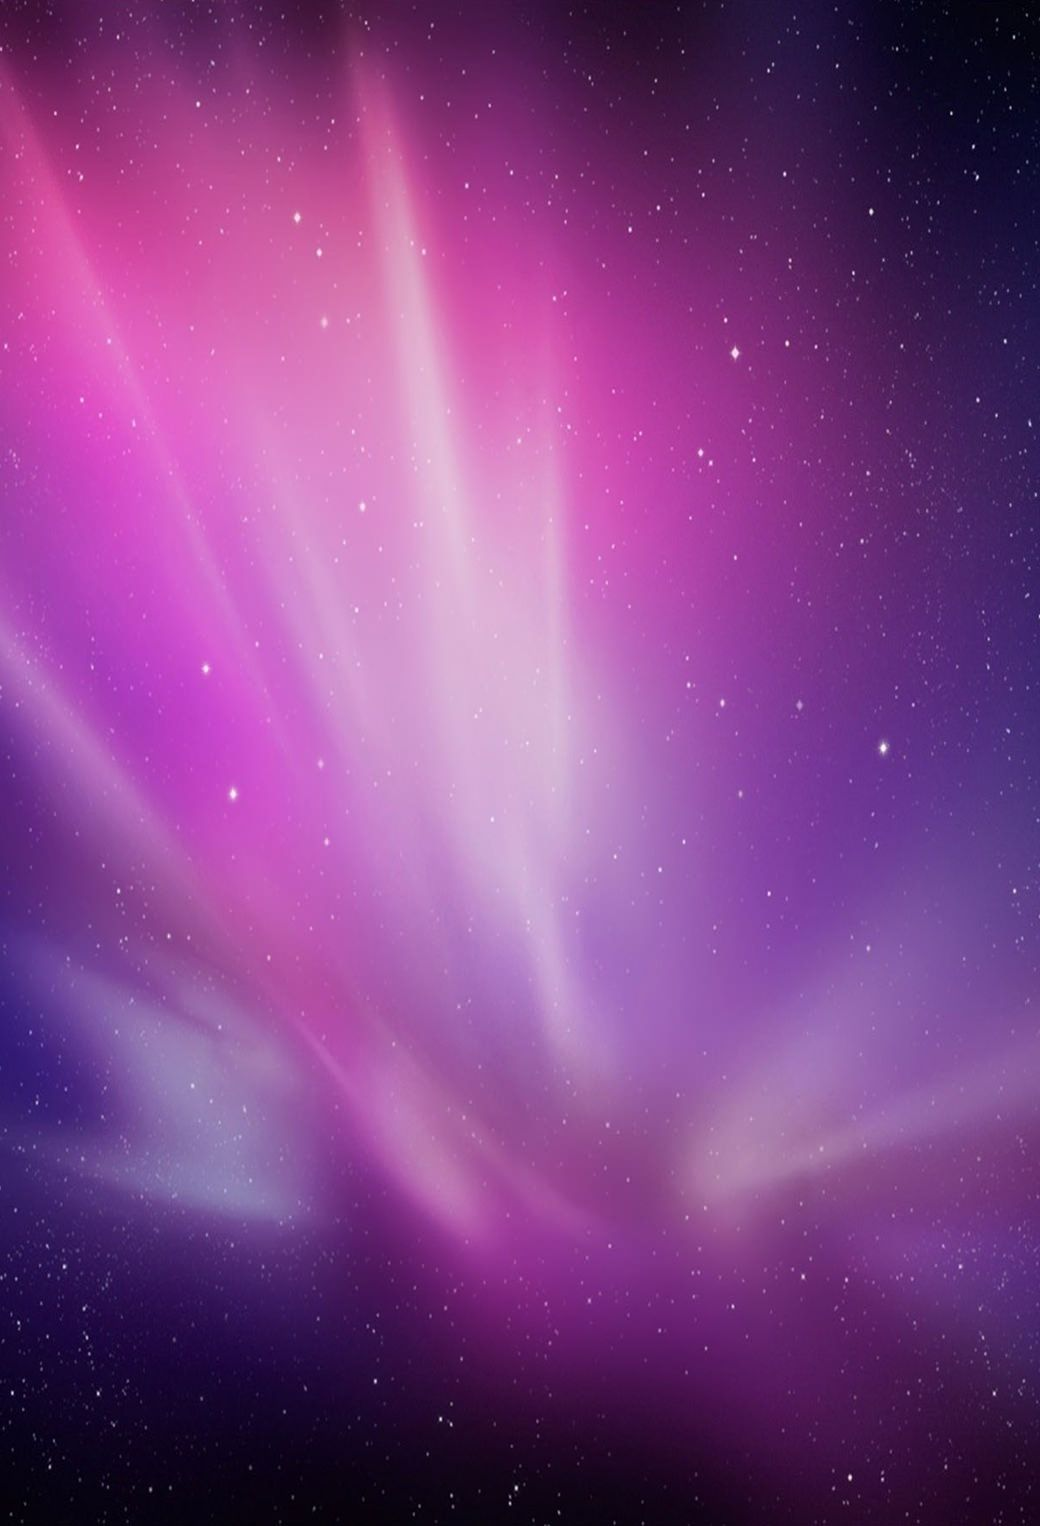 parallax-wallpaper-iphone-5s-ios-7-6